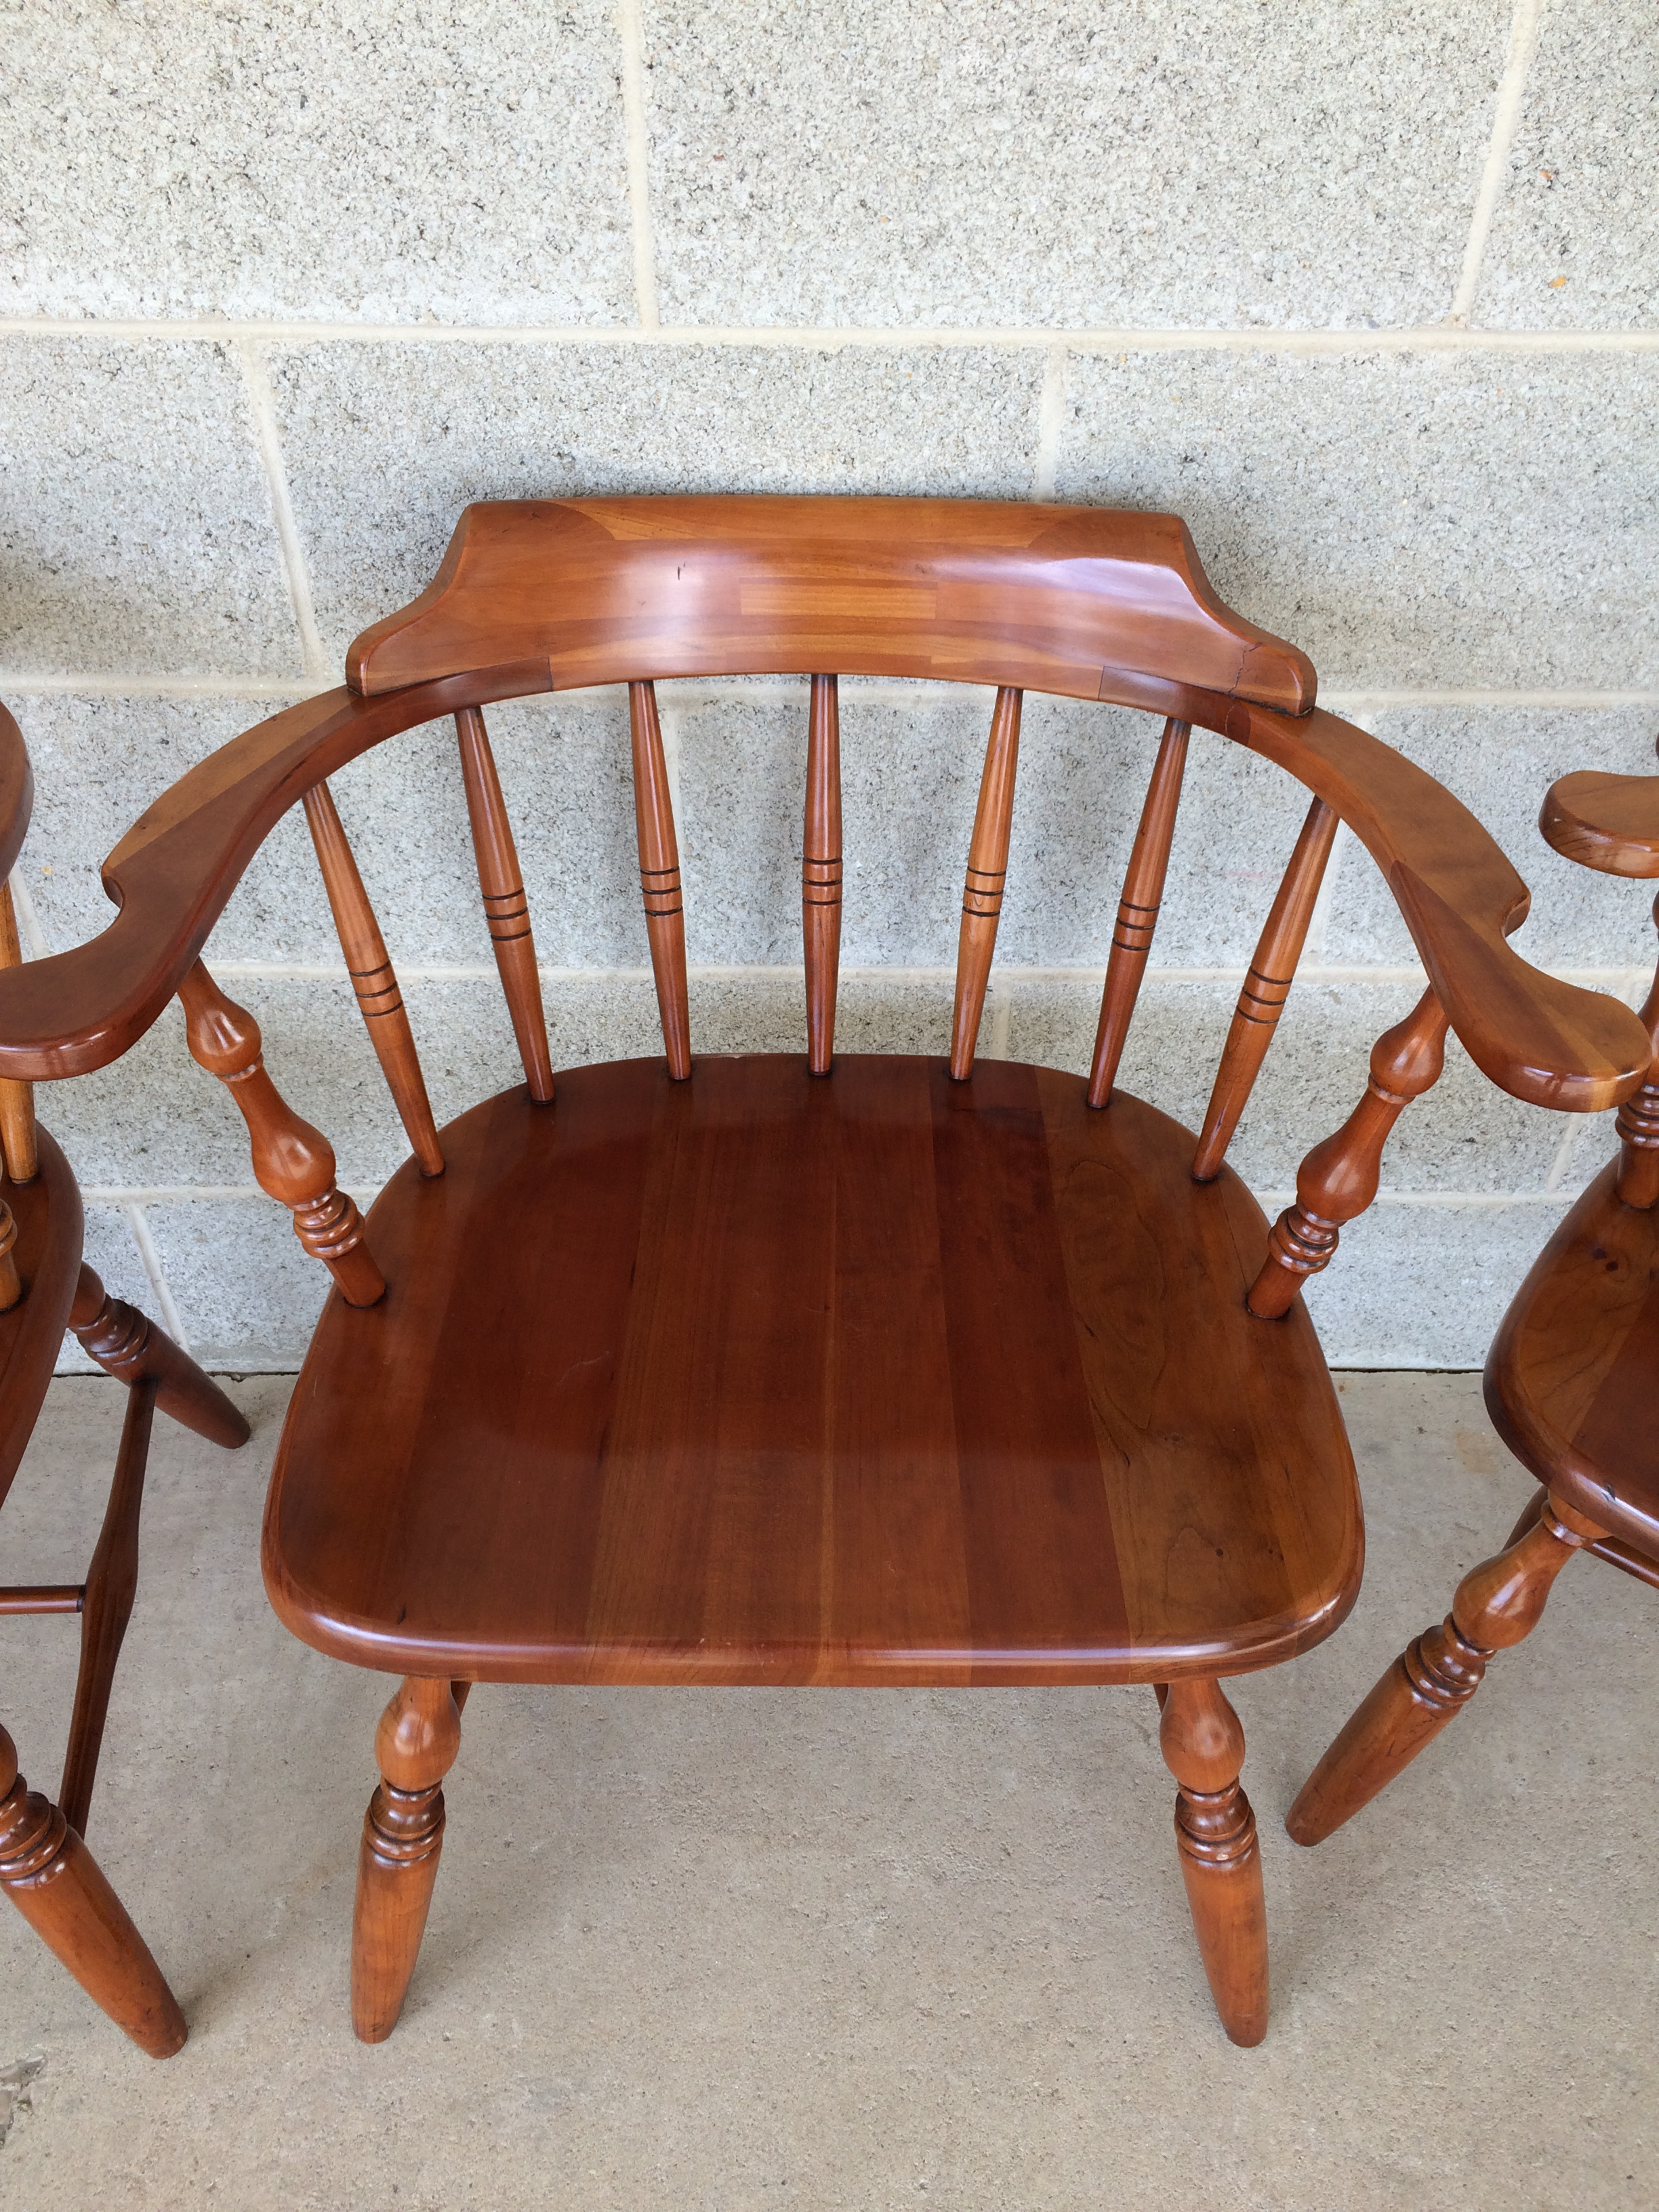 High Quality Virginia House Solid Cherry Barrel Back Chairs   Set Of 4   Image 4 Of 10